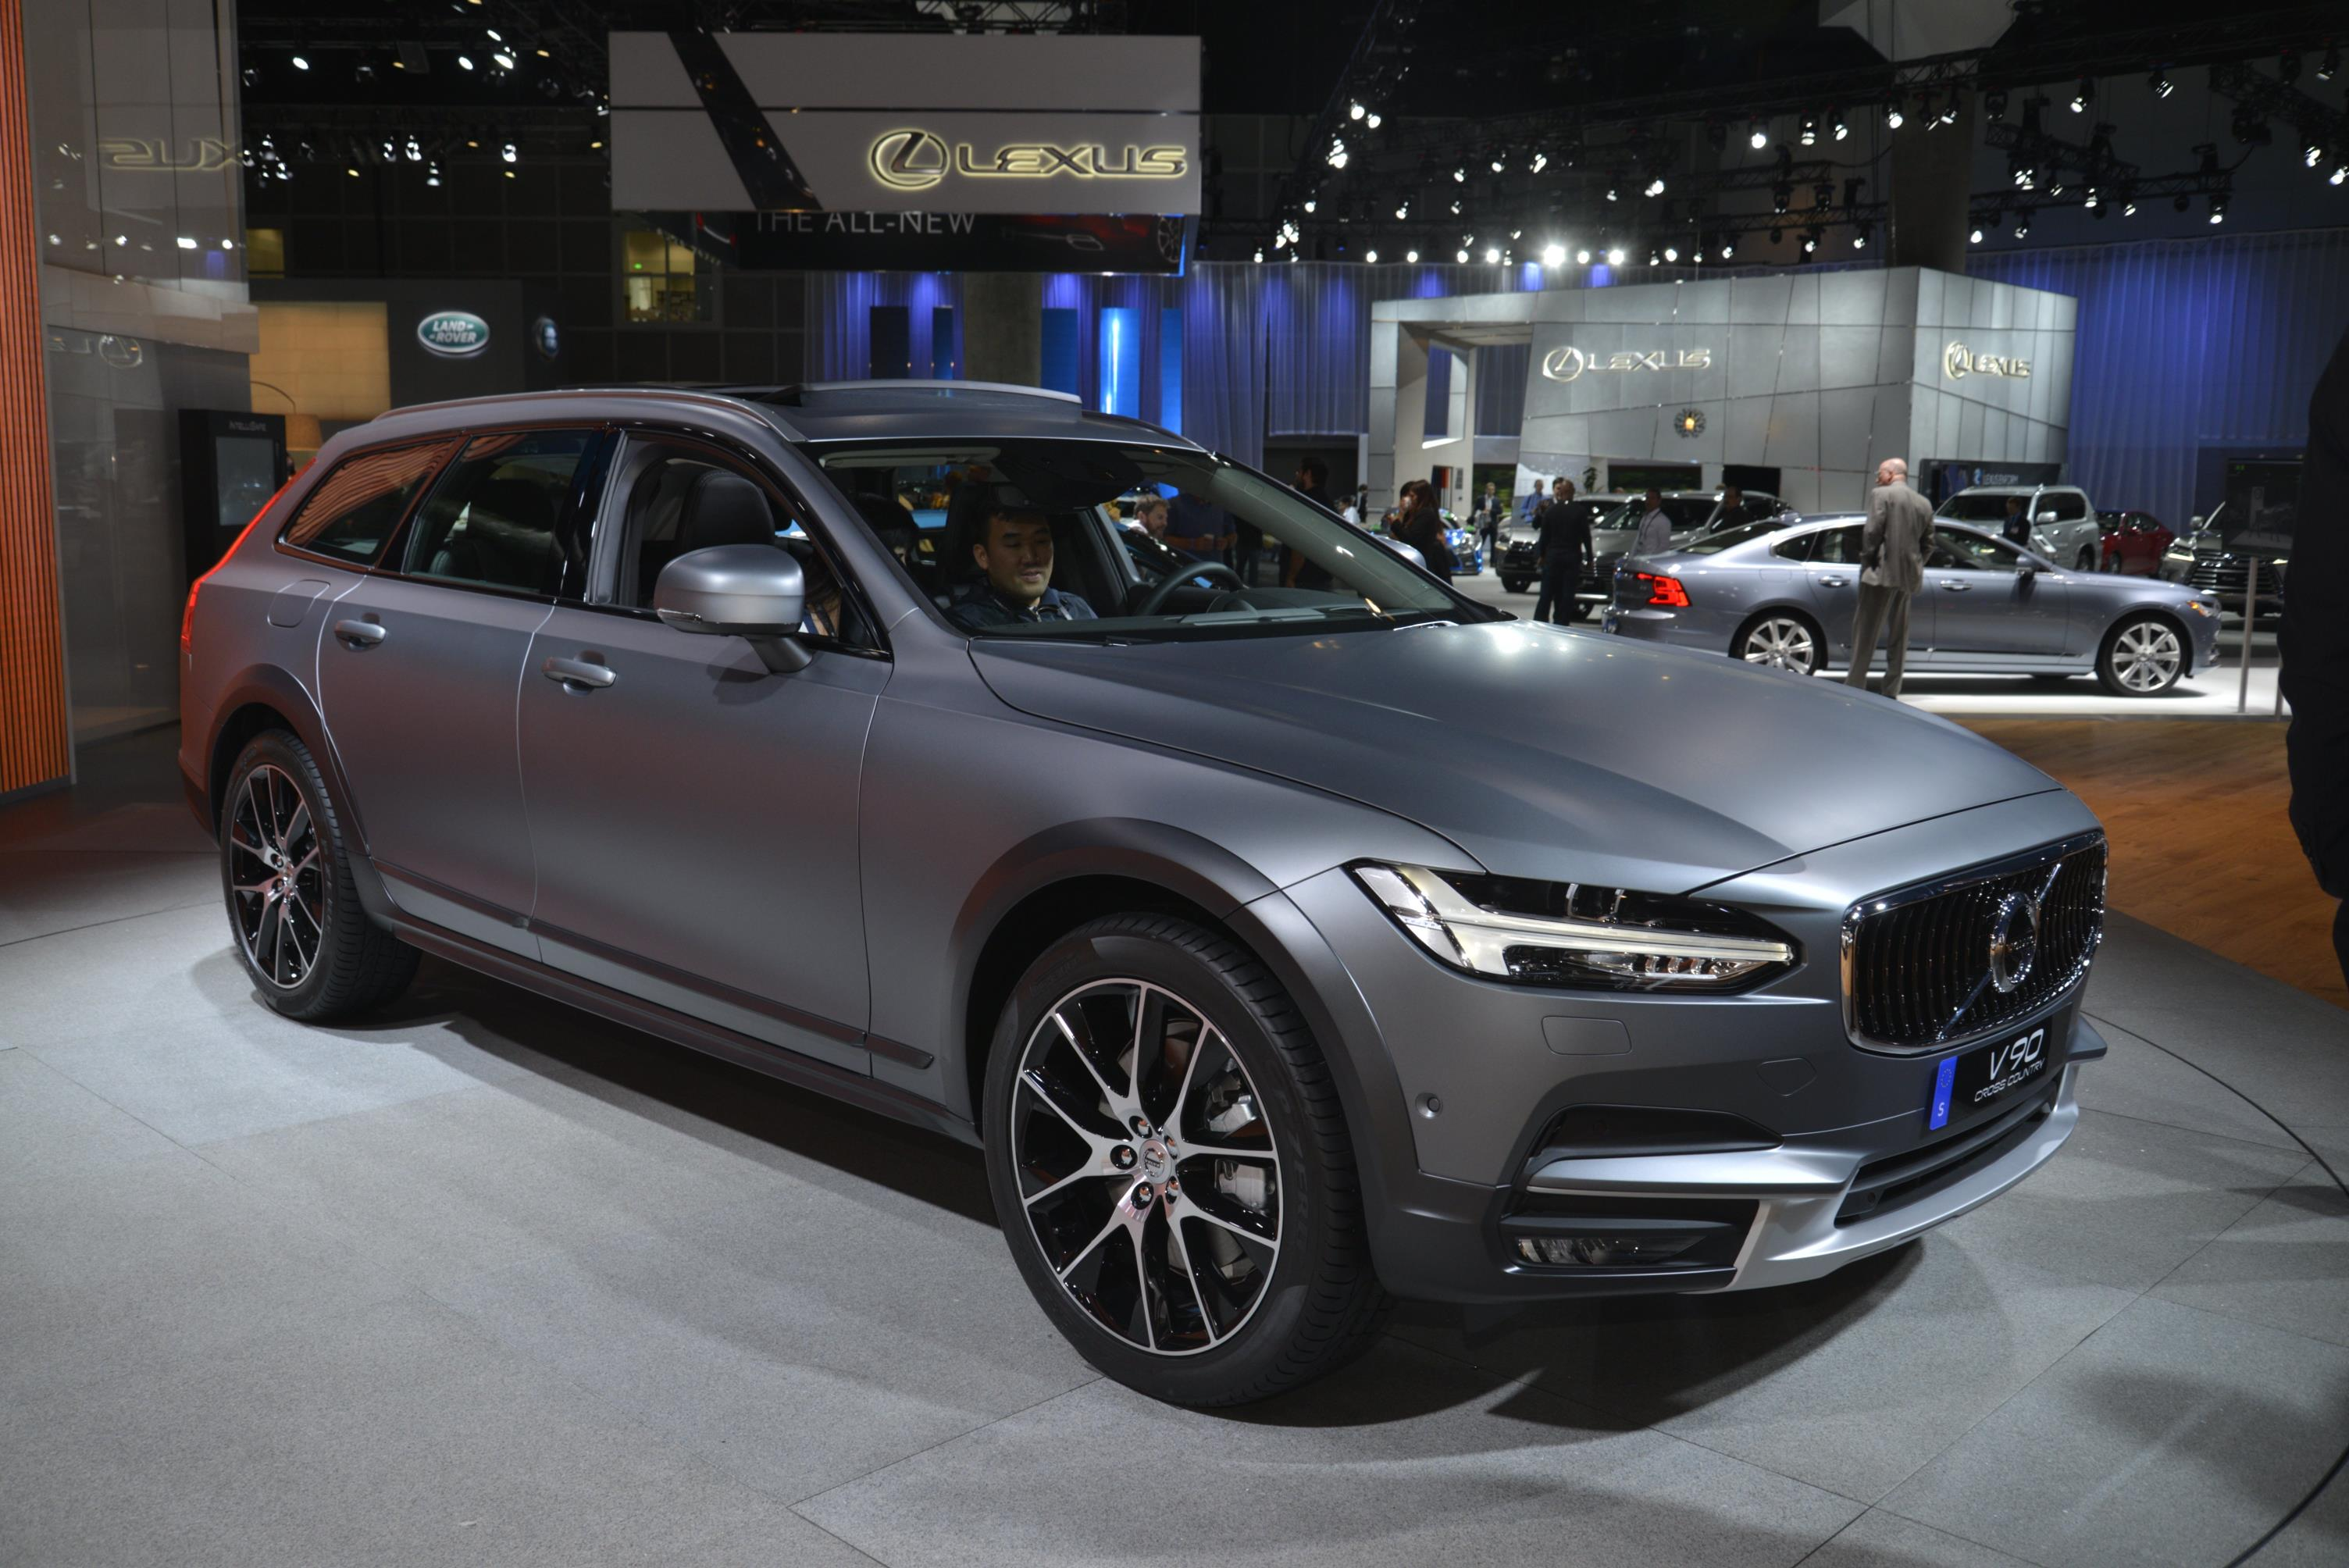 Volvo V90 Polestar Rendering: Why We Want a Performance ...